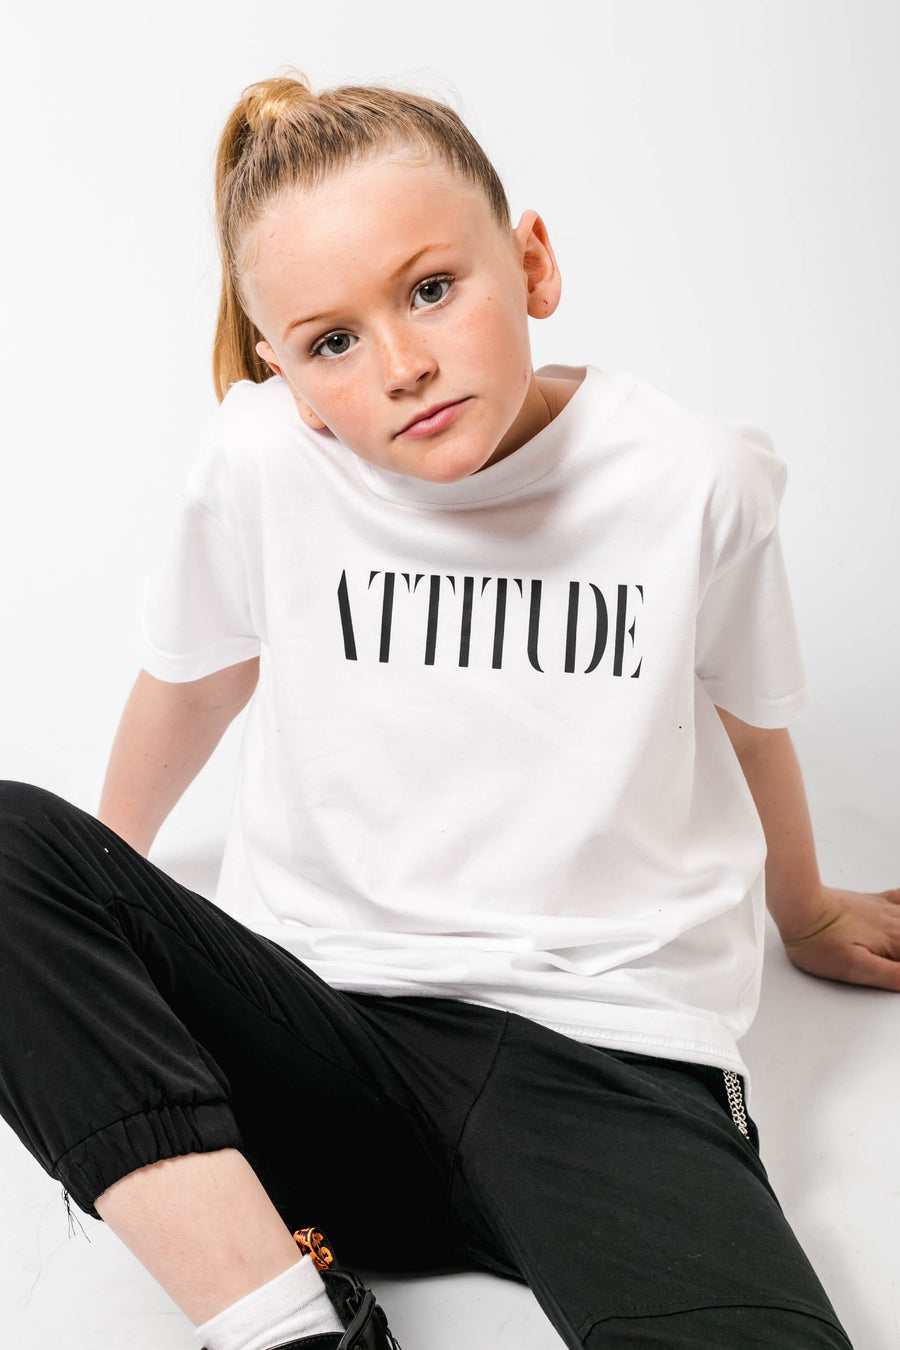 Attitude Printed Oversized T Shirt White/Black